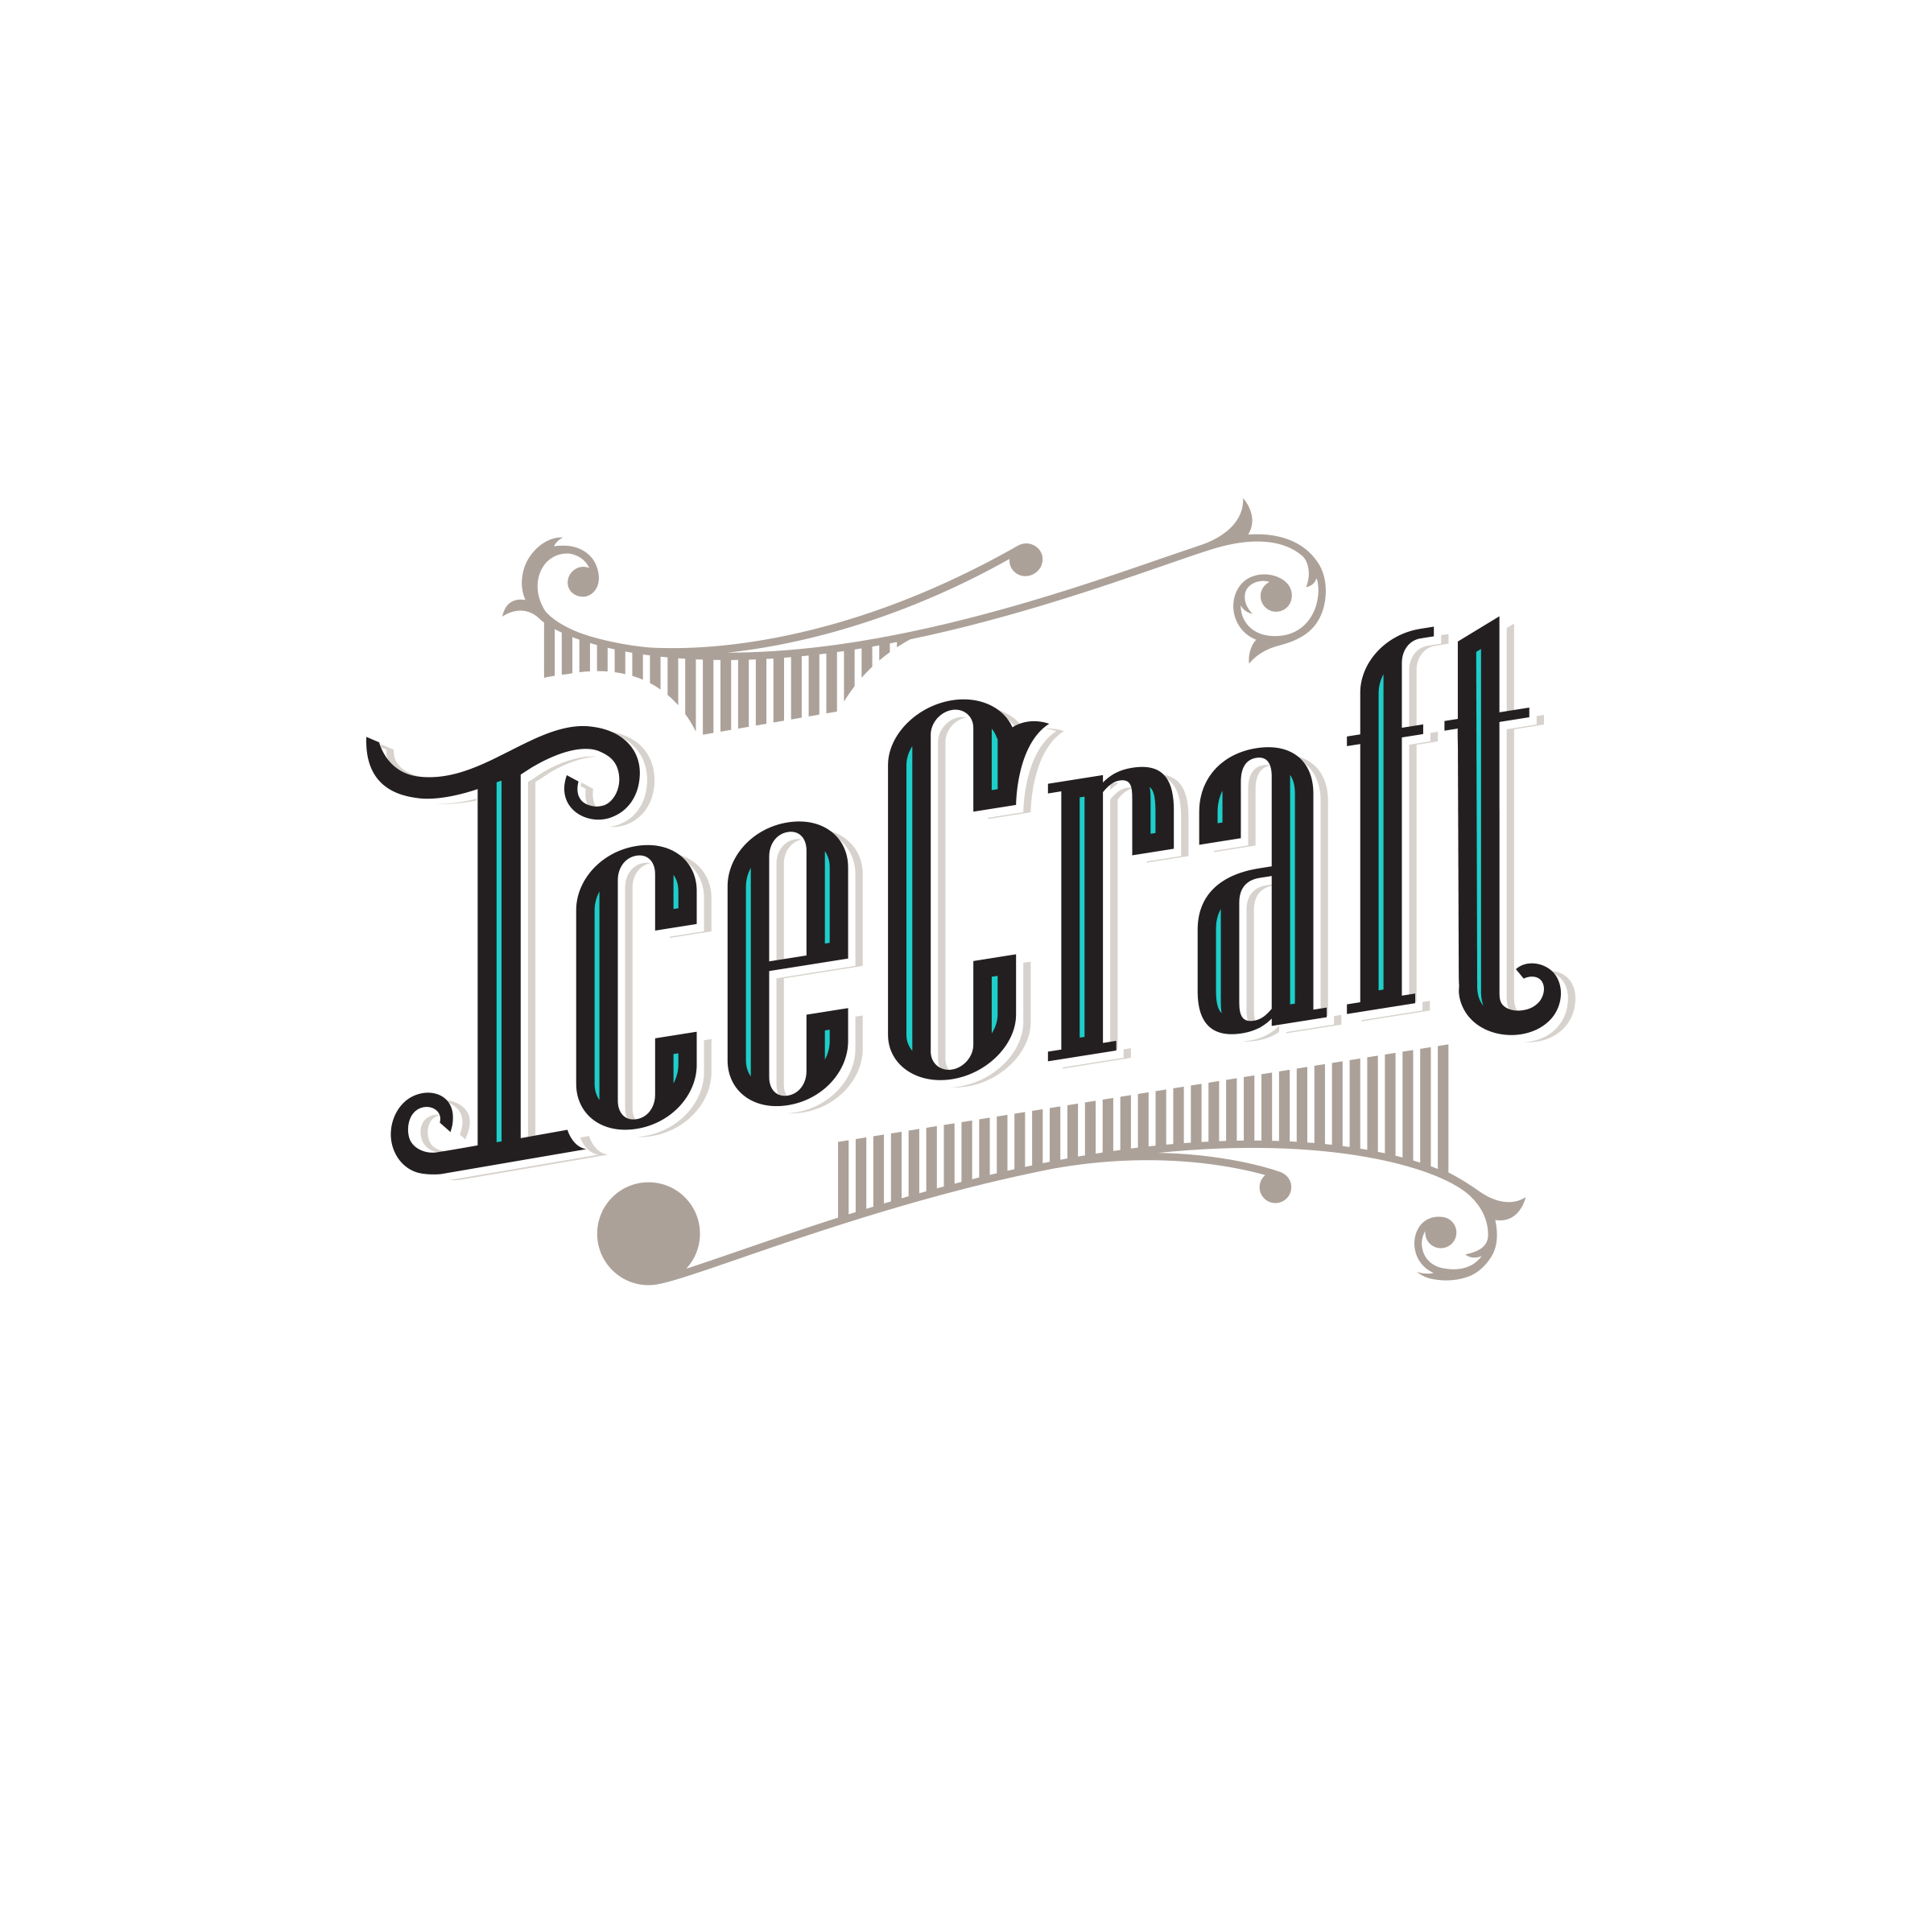 icecraft-logo-typography-design-by-jordan-fretz.jpg